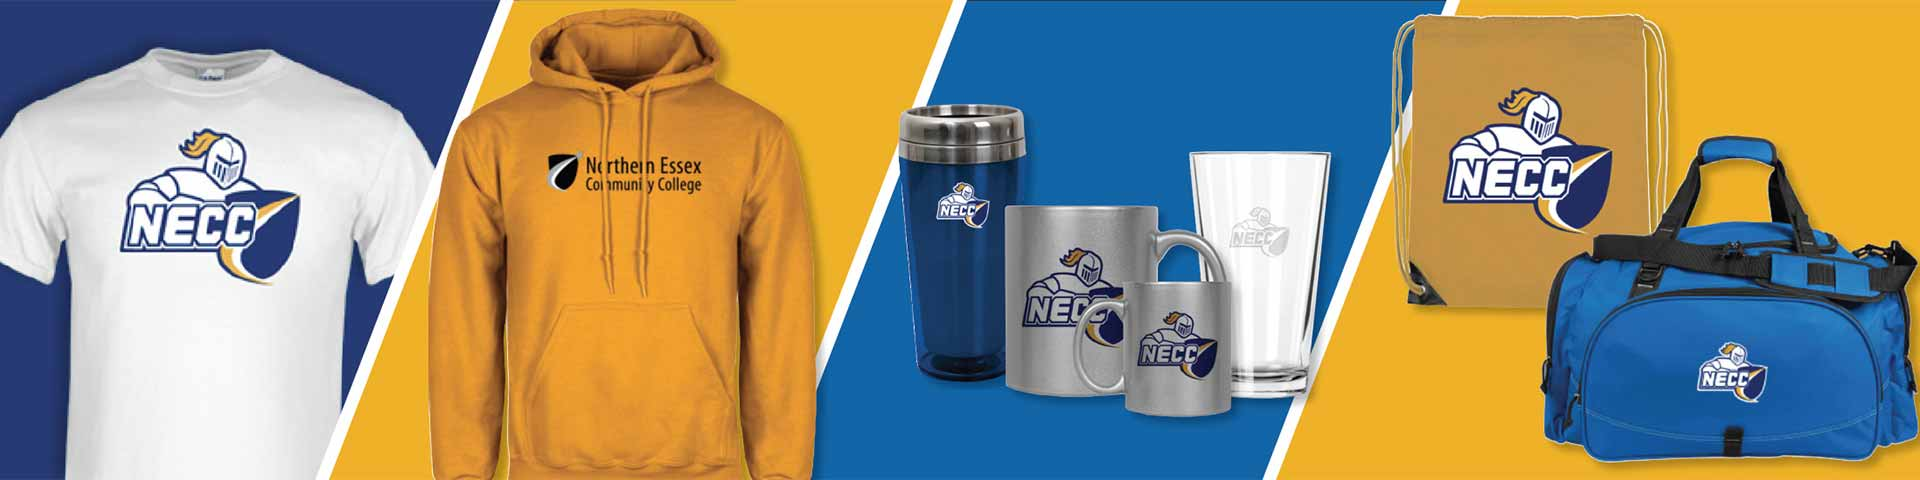 NECC Knight Gear